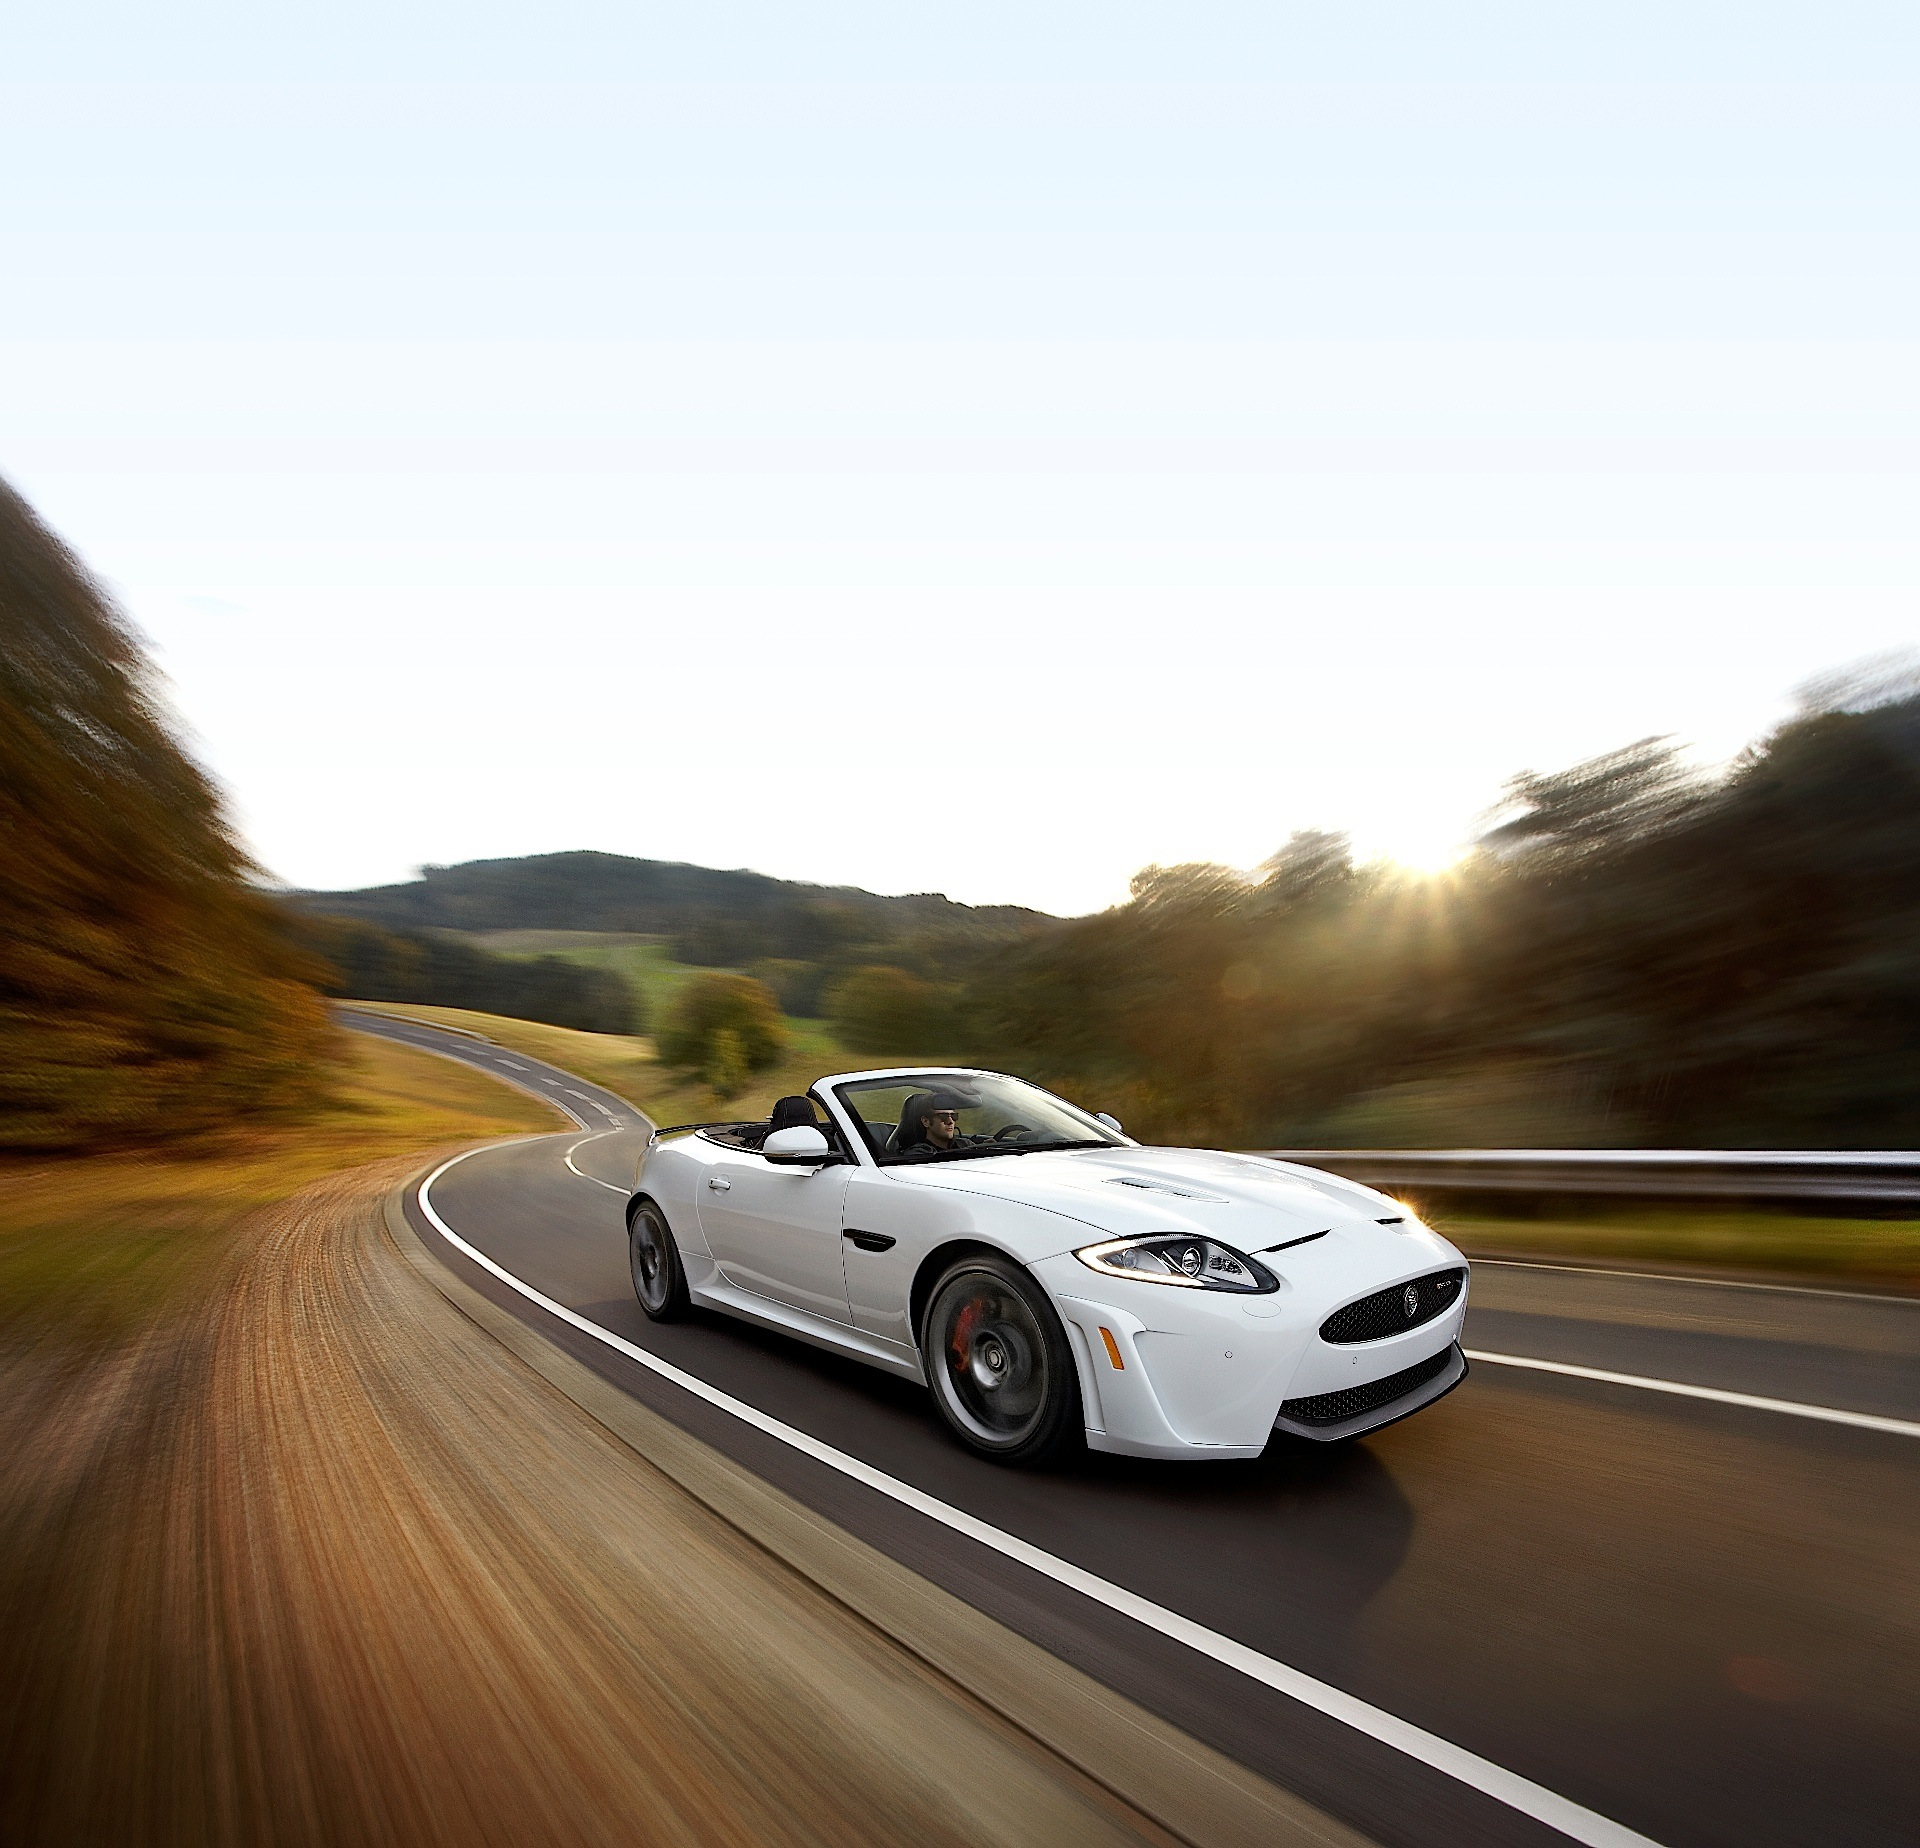 Price Of Jaguar Convertible: JAGUAR XKR-S Convertible Specs & Photos